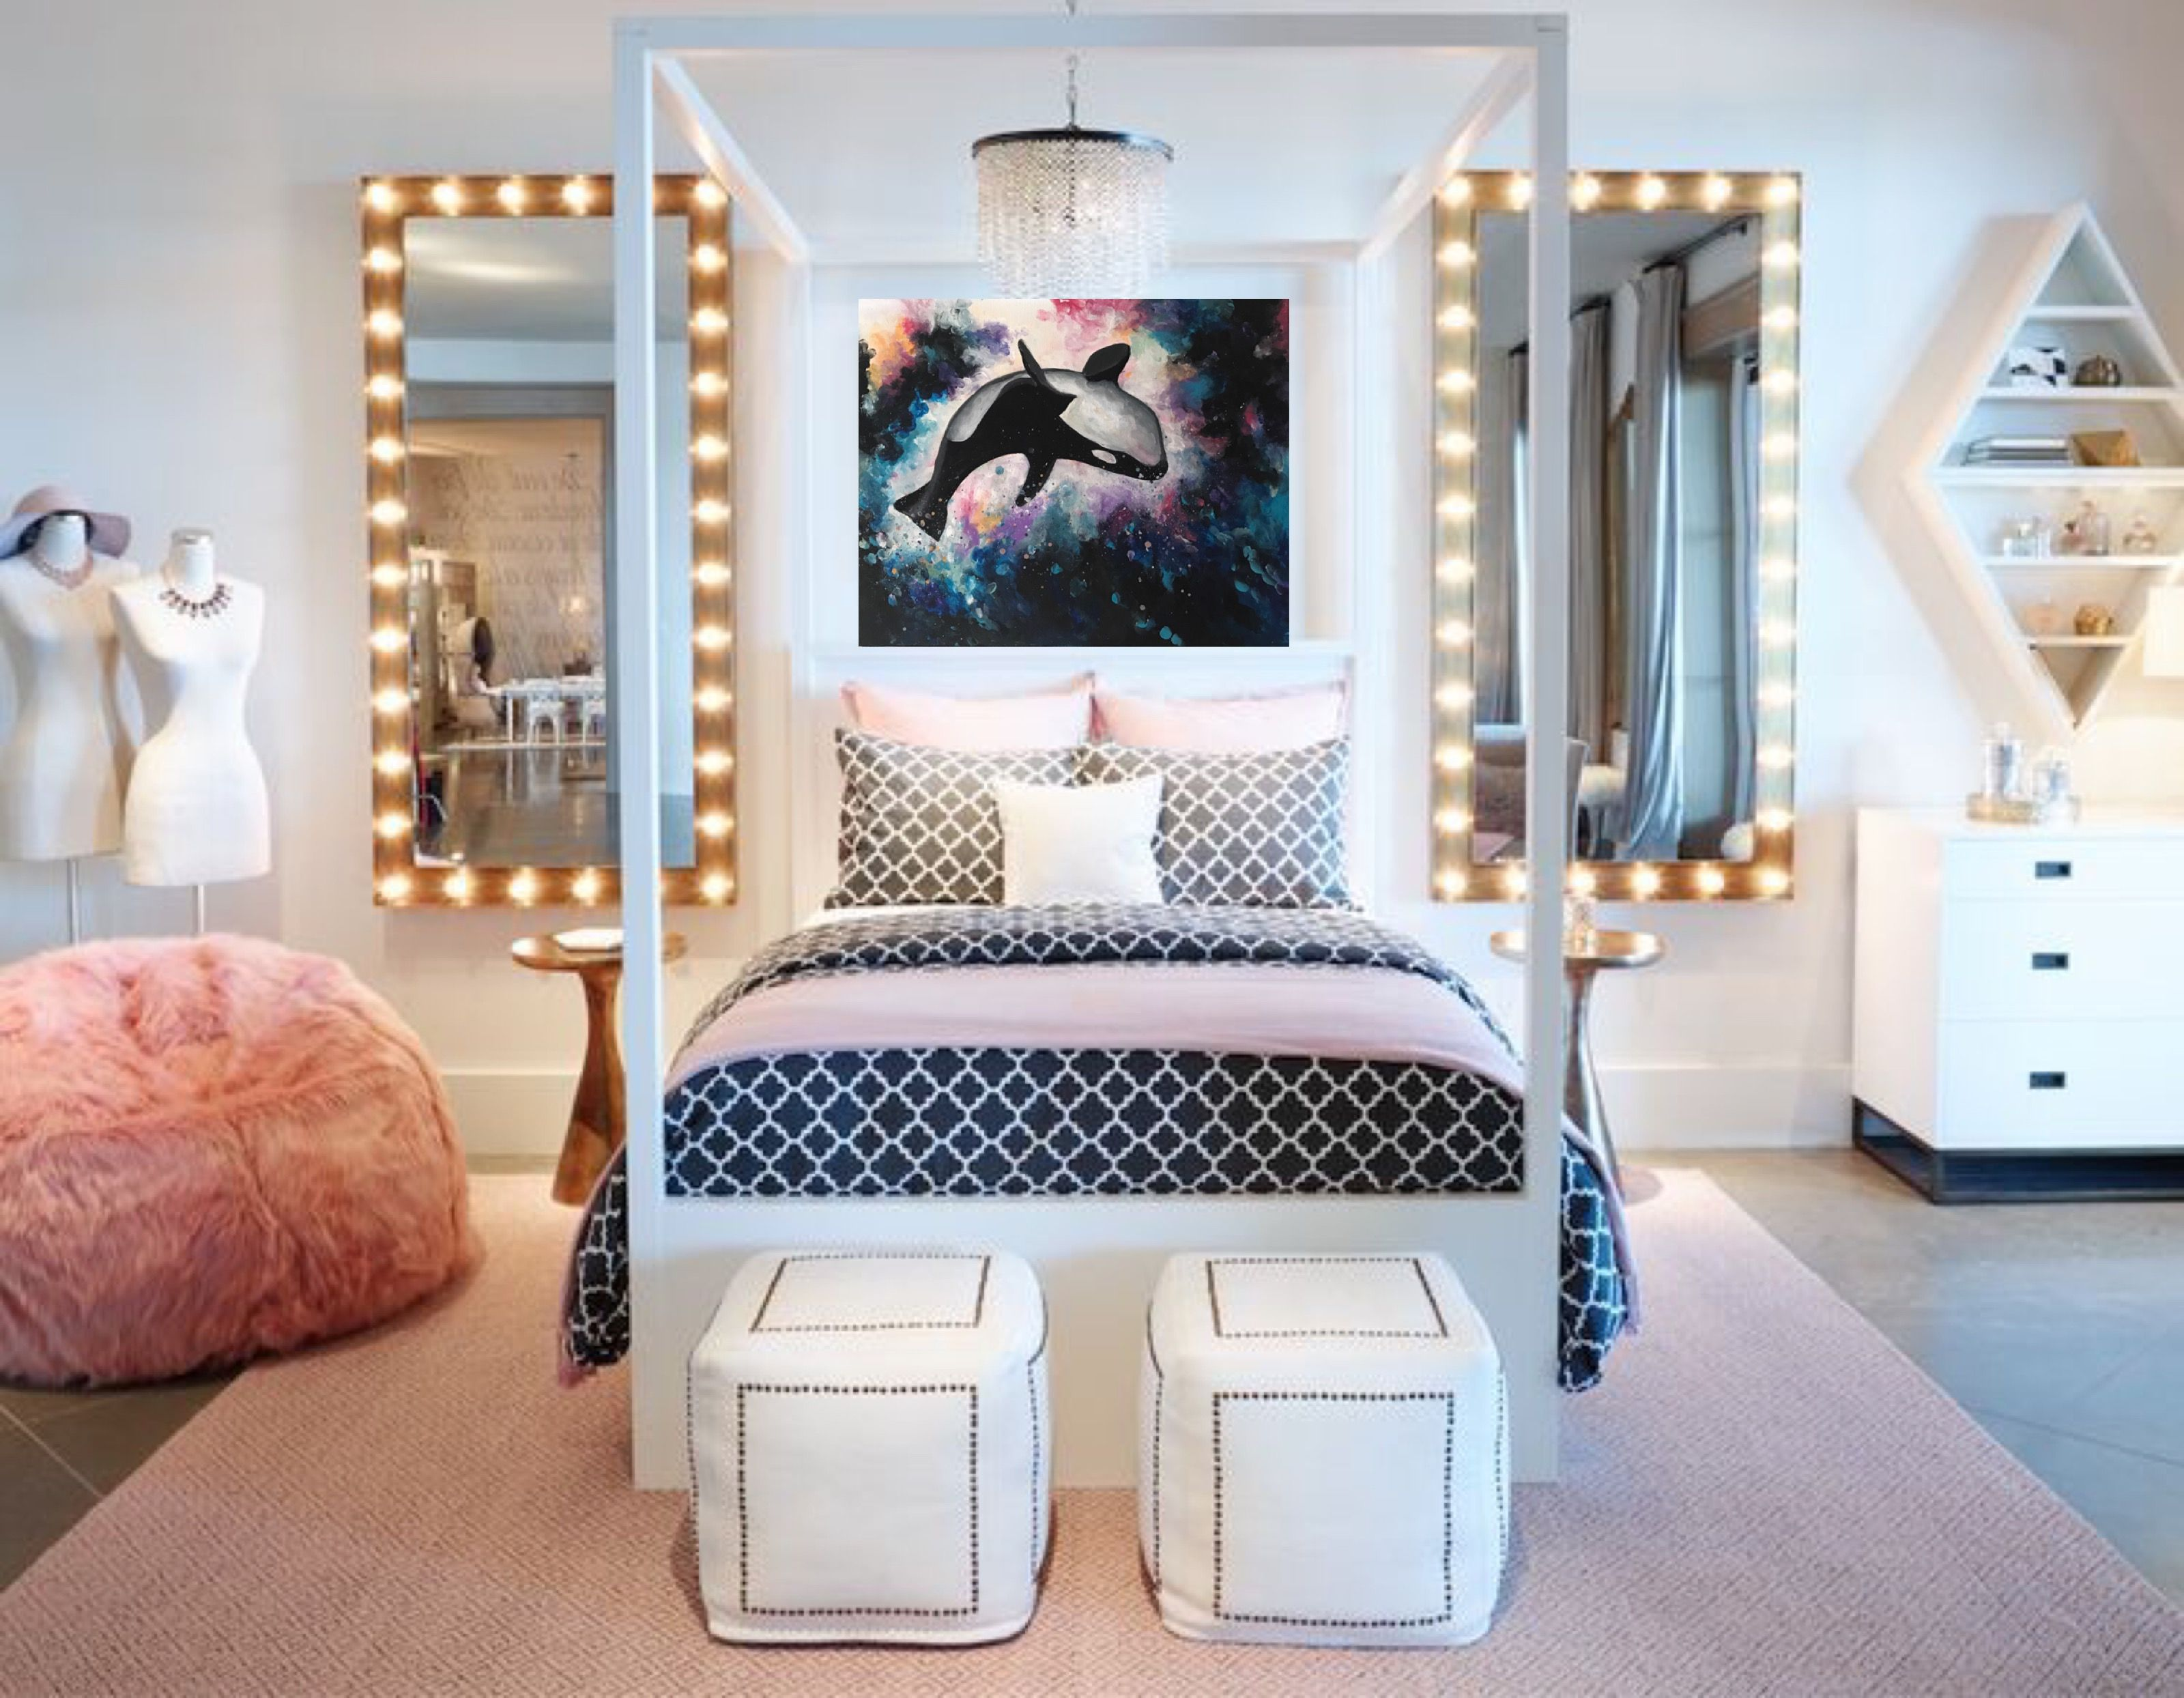 Glam bedroom glamorous bedroom glam art fashion art - Mature teenage girl bedroom ideas ...